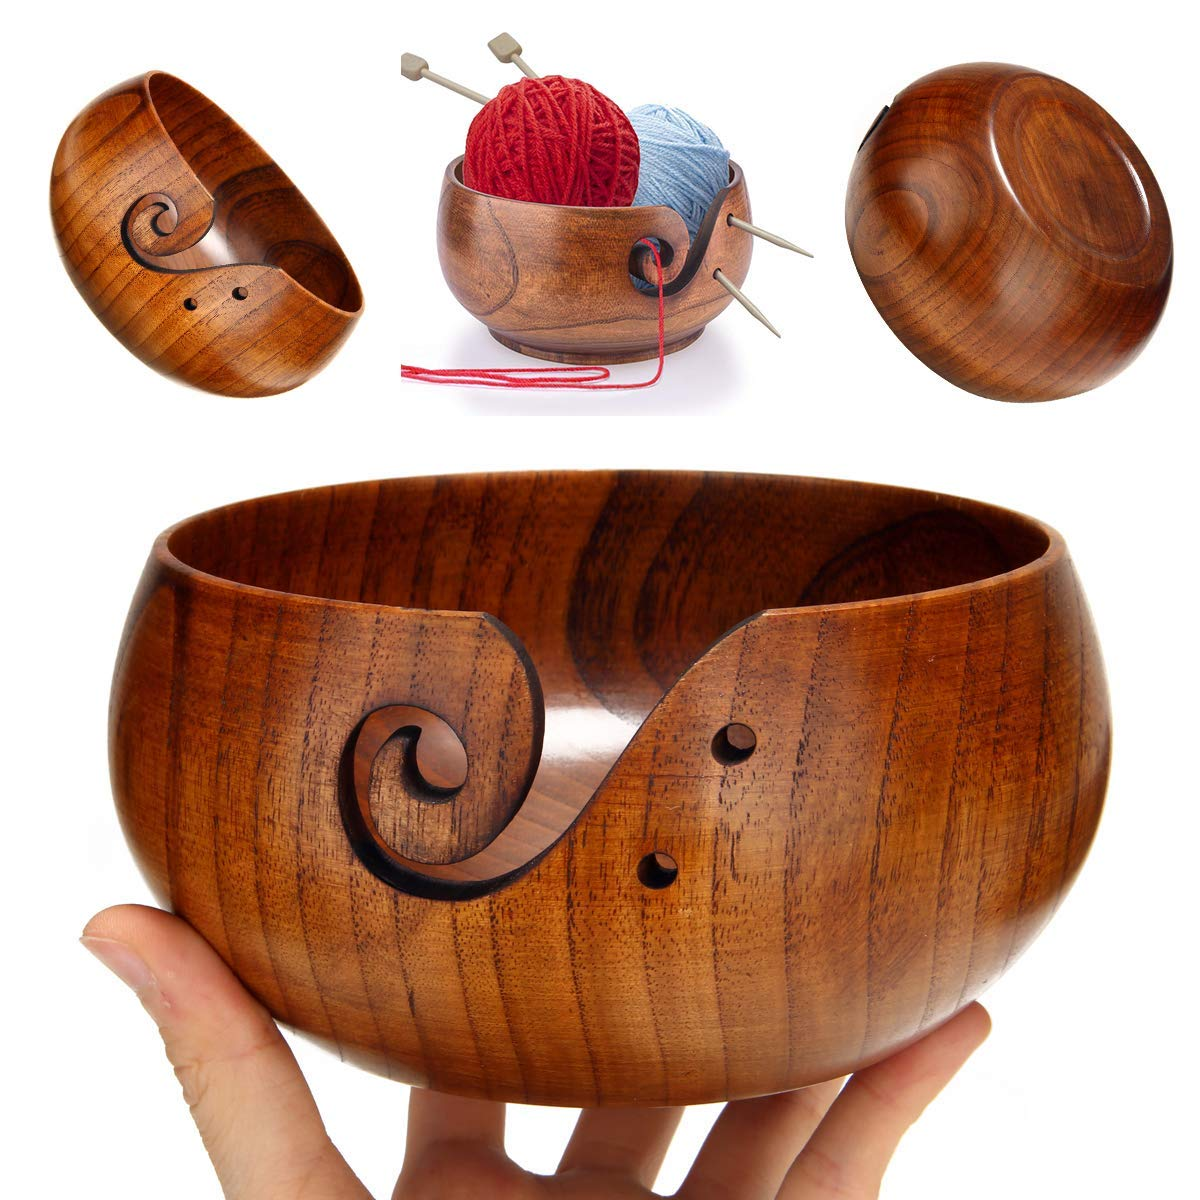 Knitting Bowl with Holes Storage Handmade to Prevent Slipping 6 x 3 Perfect Yarn Holder for Knitting /& Crocheting Best Gift for Mothers Day Wooden Yarn Bowl